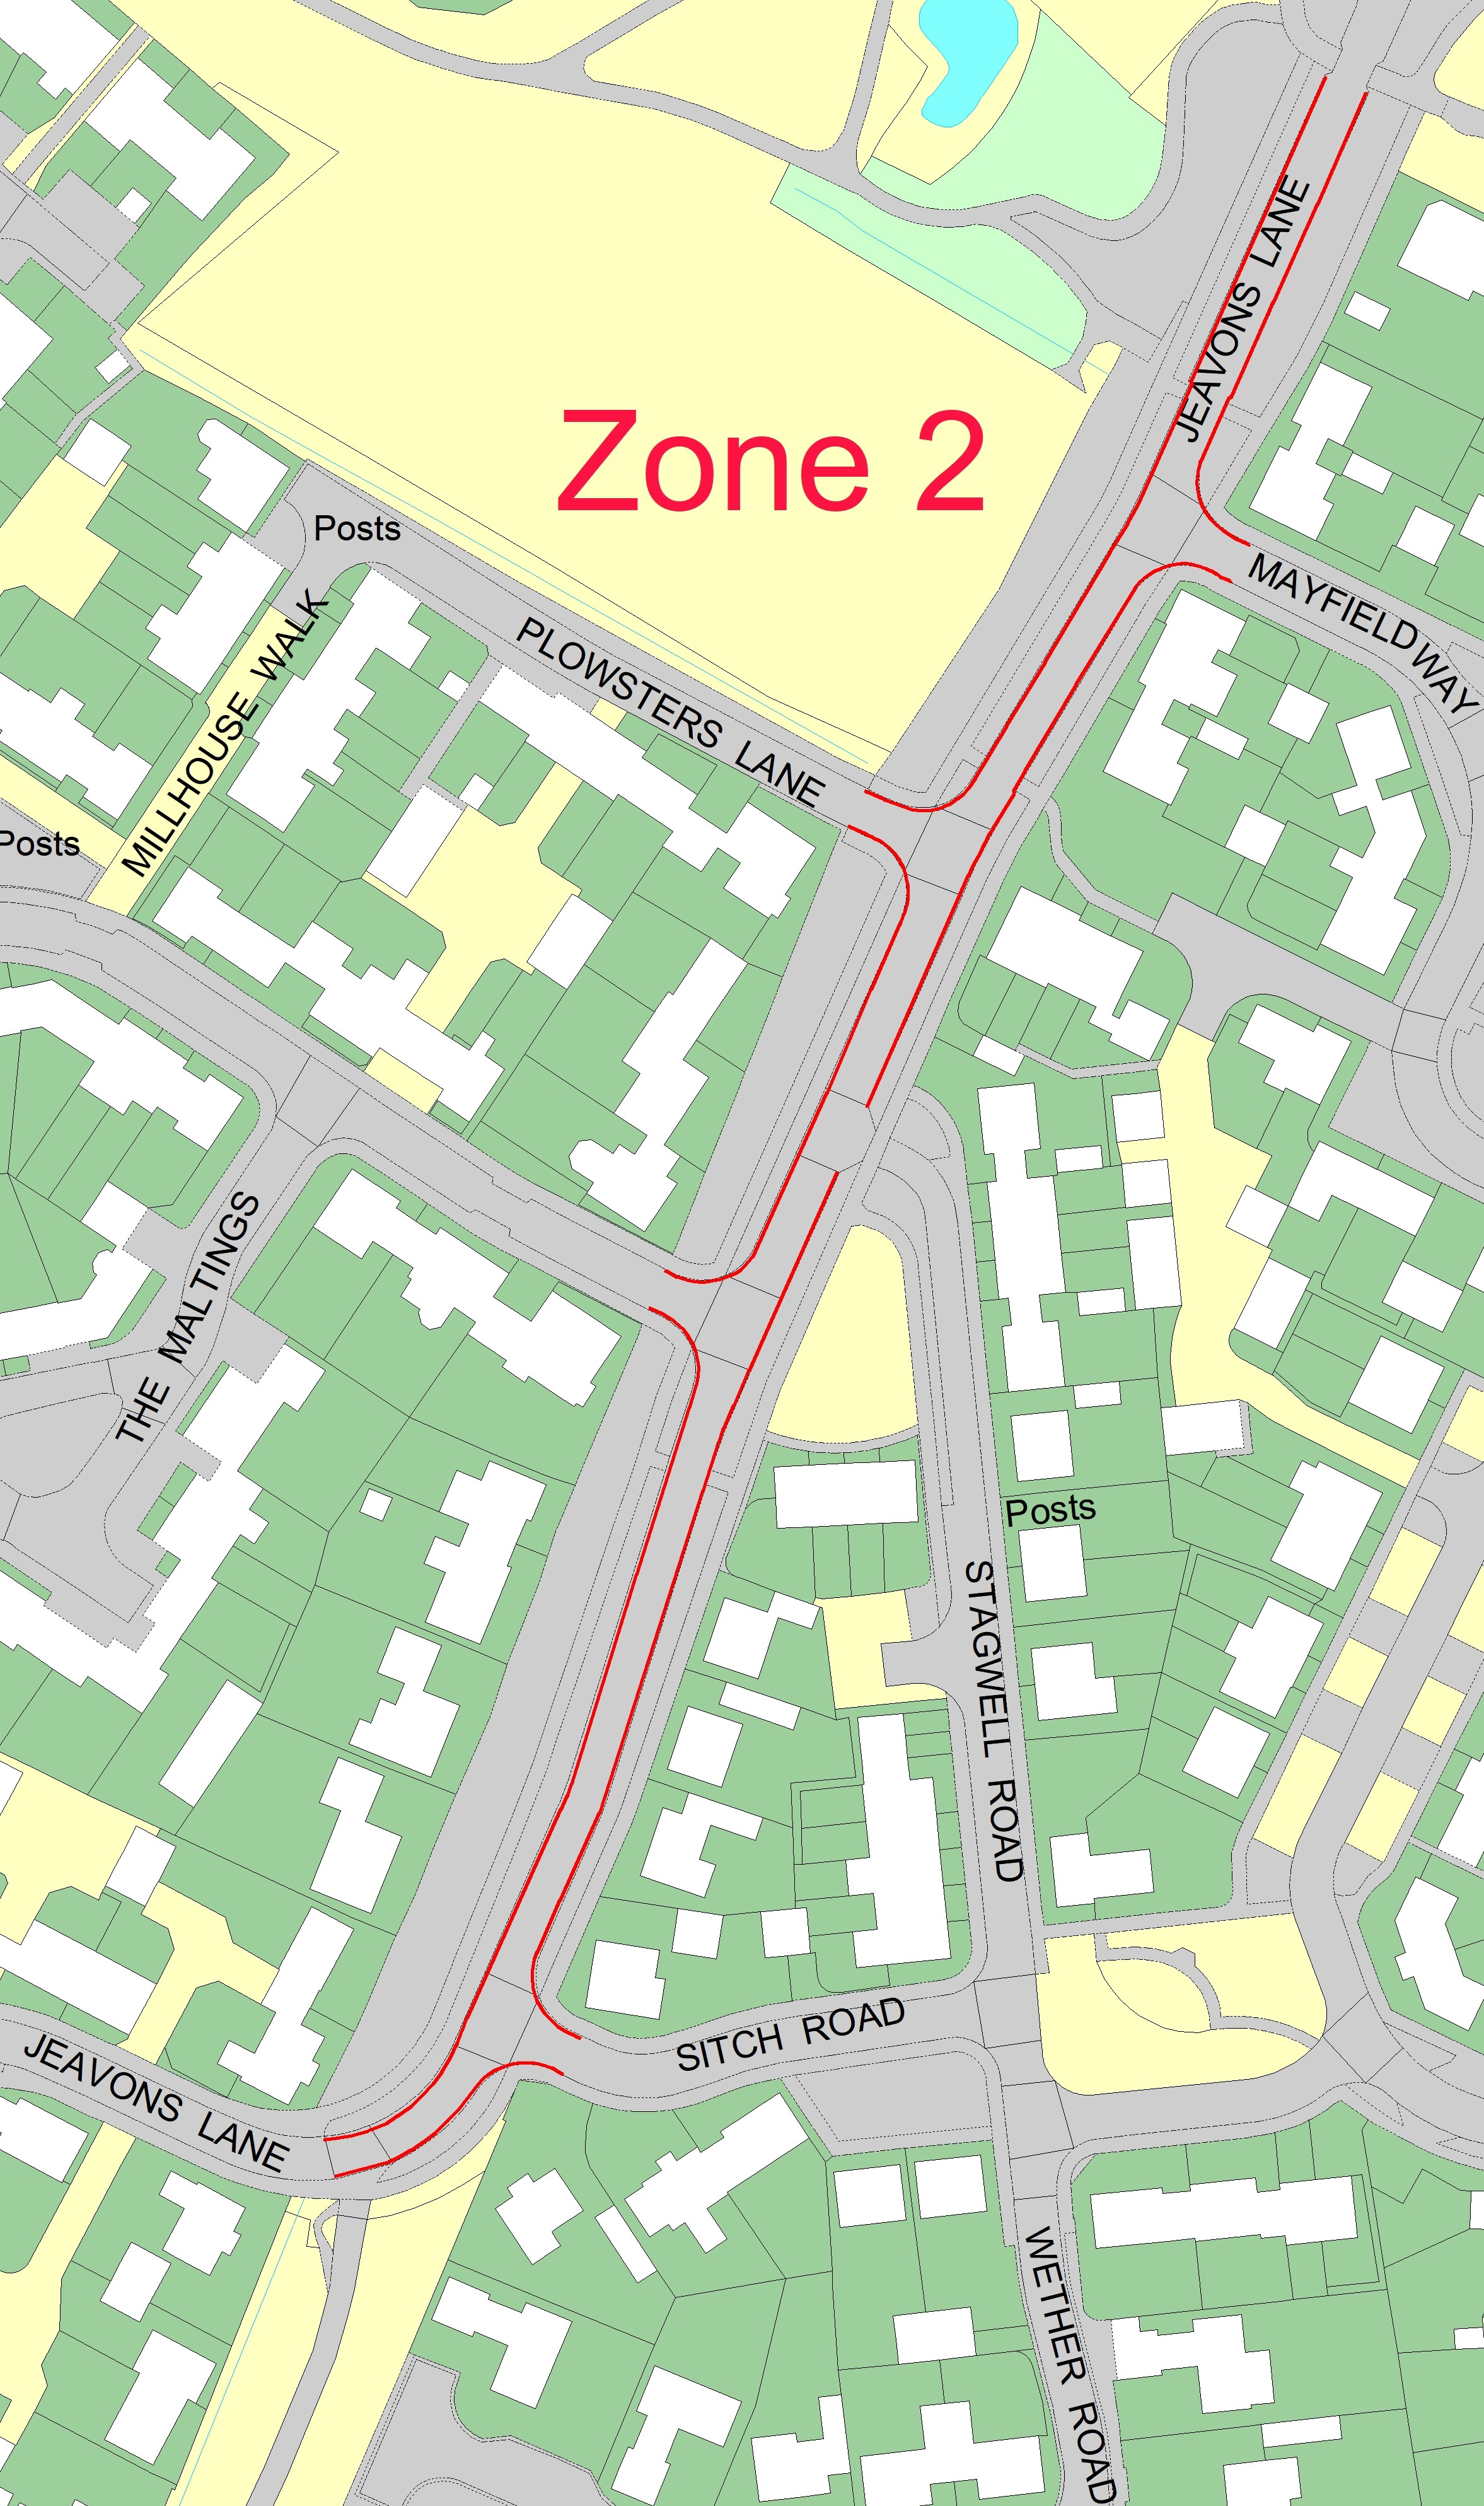 Zone 2 - Jeavons Lane (from the tennis court down past the turning for Miller Way, Stagwell Road to Sitch Road)